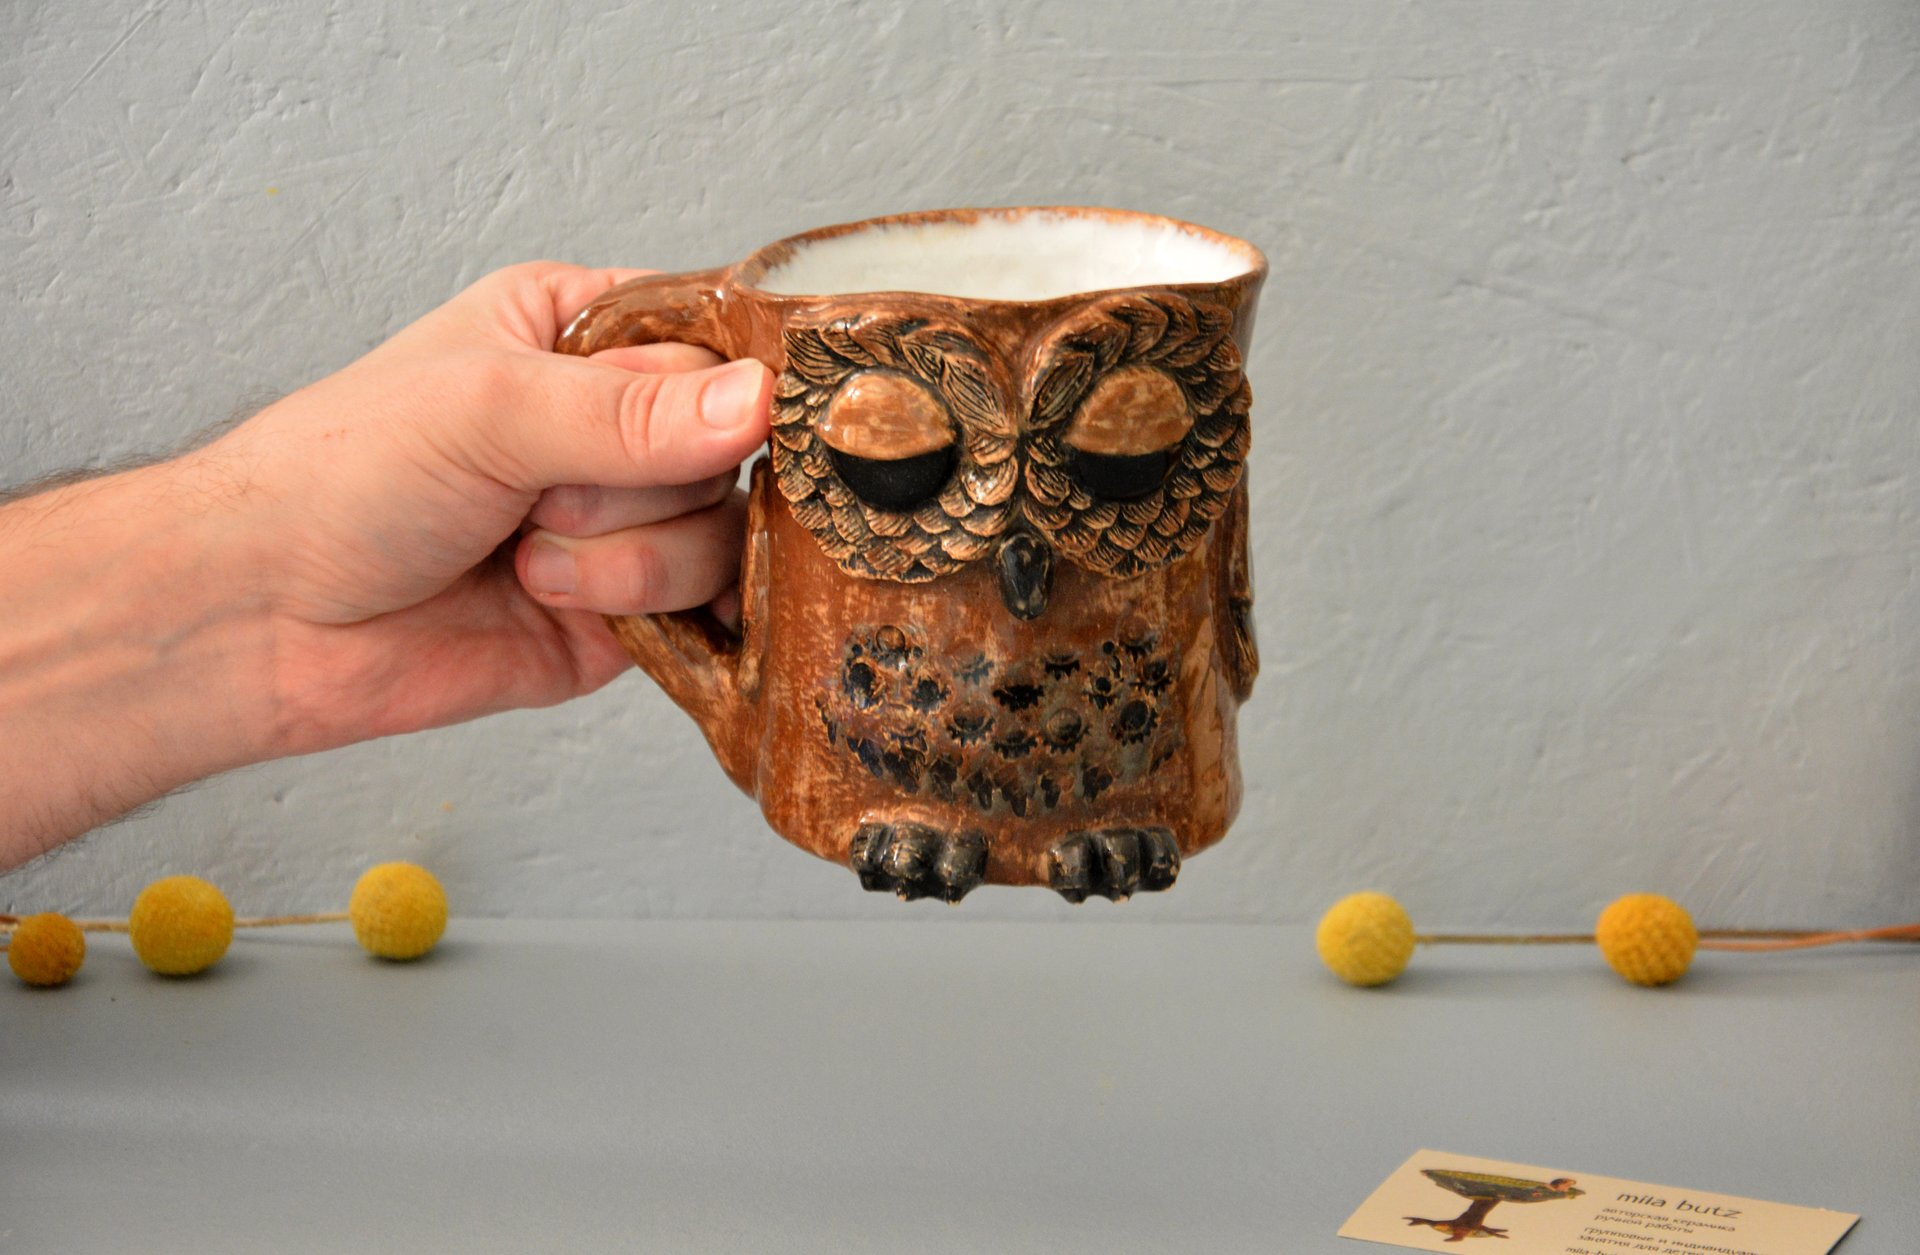 Owl is a large cup, аmount - 0.5 l,  height - 14 cm, diameter - 10 cm, photo 5 of 6.